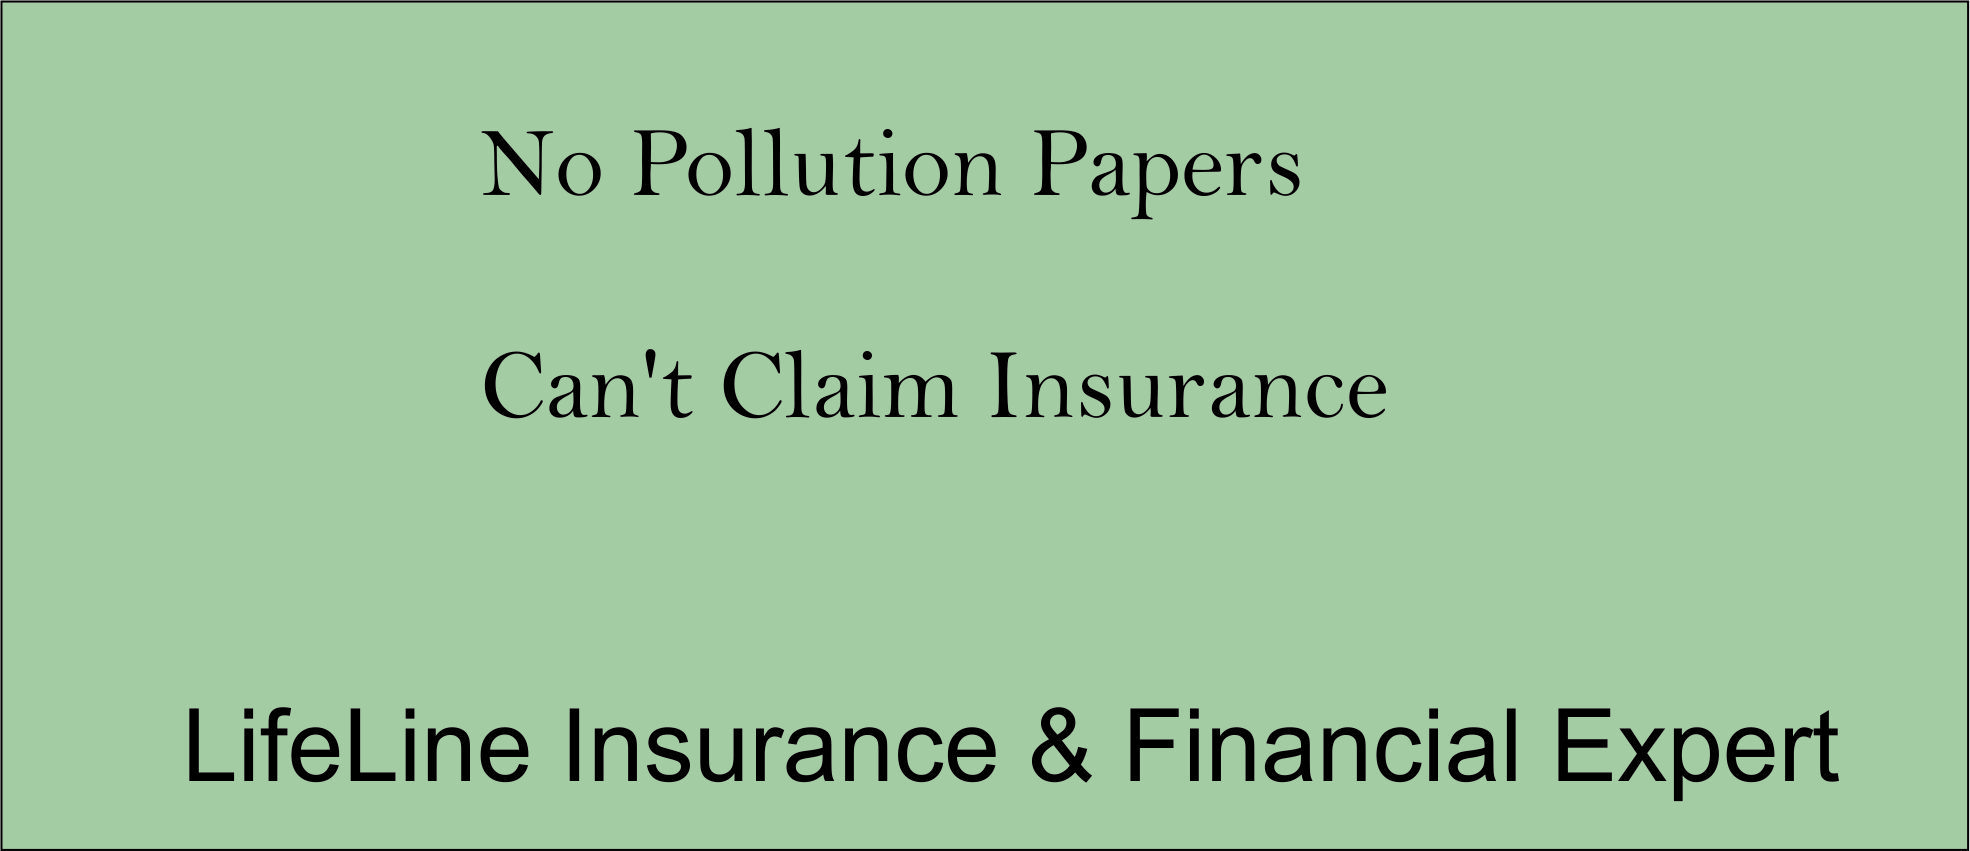 Insurance Claims Will Not Be Paid For Any Accident If The Puc Certificate Is Found To Be Invalid On The Day Of The Accident Insurance Insurance Claim Paper